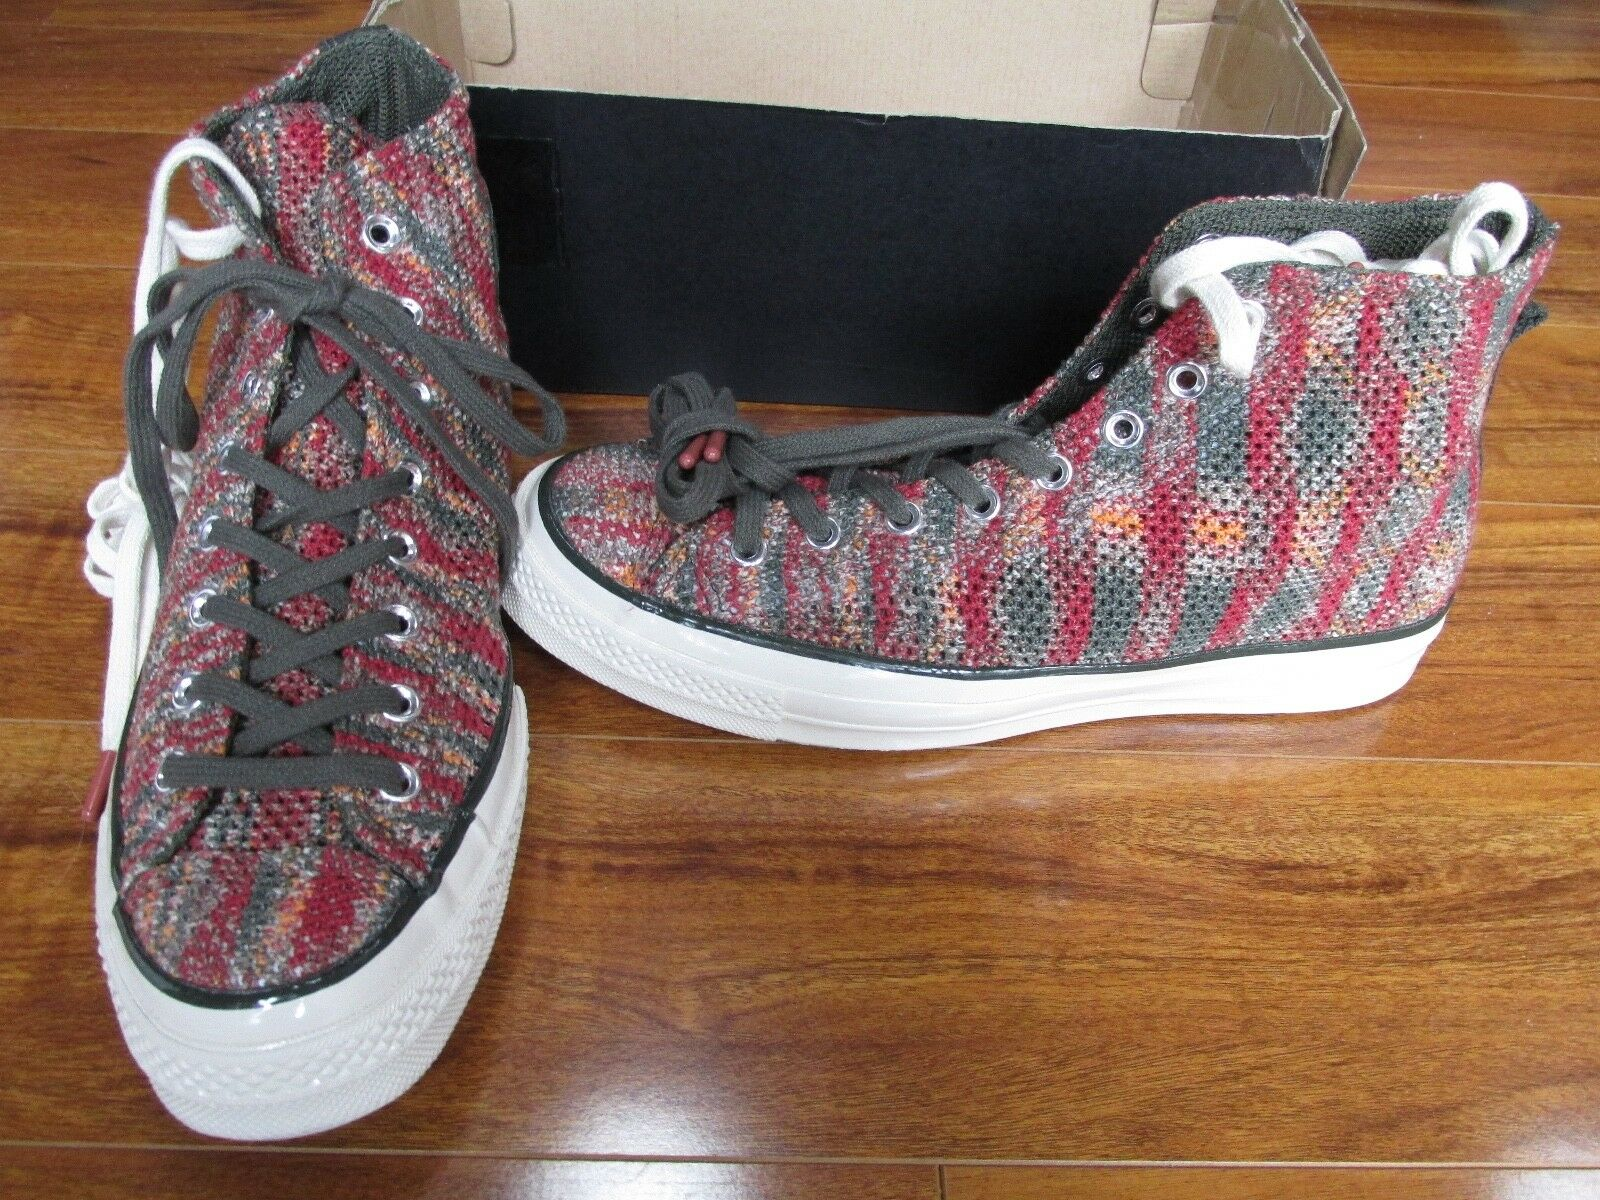 Scarpe casual da uomo NEW Converse Missoni Chuck Taylor All Star 1970 Hi Shoes uomoS 9.5 153105C $200.